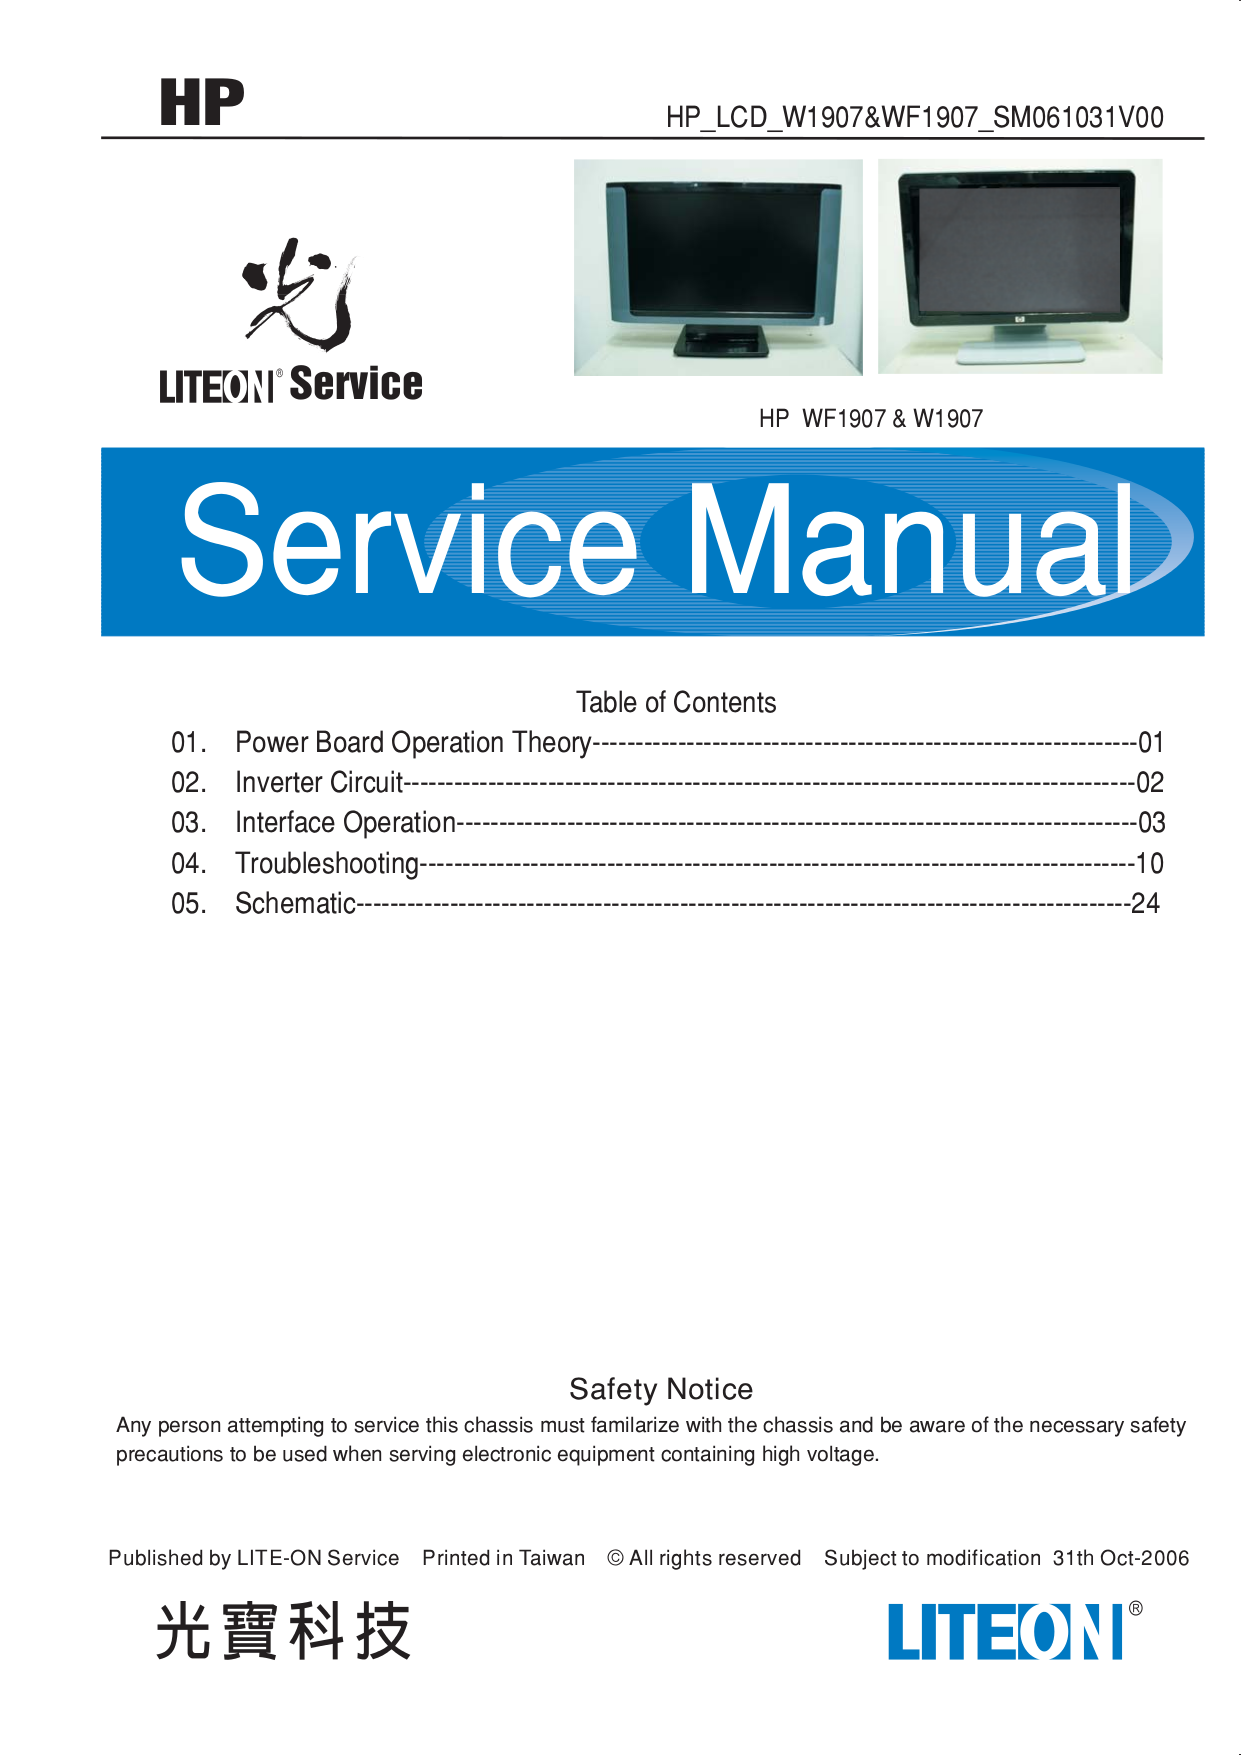 hp w1907 manual various owner manual guide u2022 rh justk co HP W1907 Accessries HP W1907 Unboxing